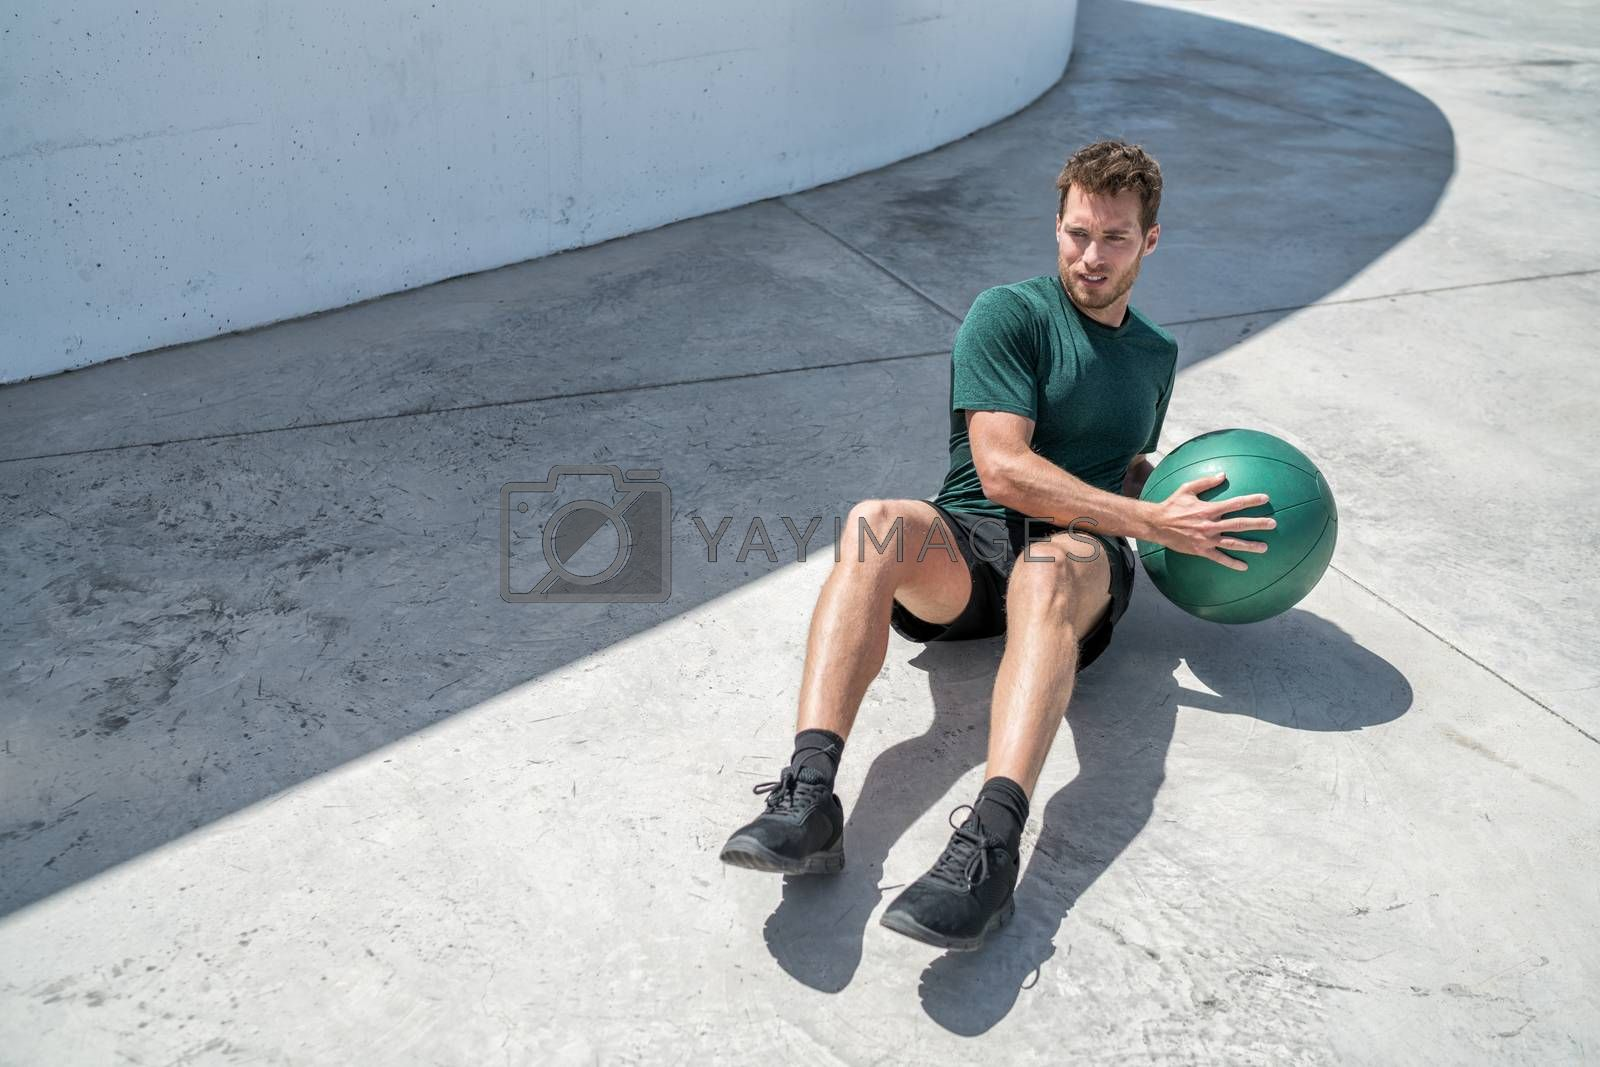 Medicine ball exercise russian twist man. Abs workout - fitness athlete working out doing exercises training oblique muscles on outdoor floor.